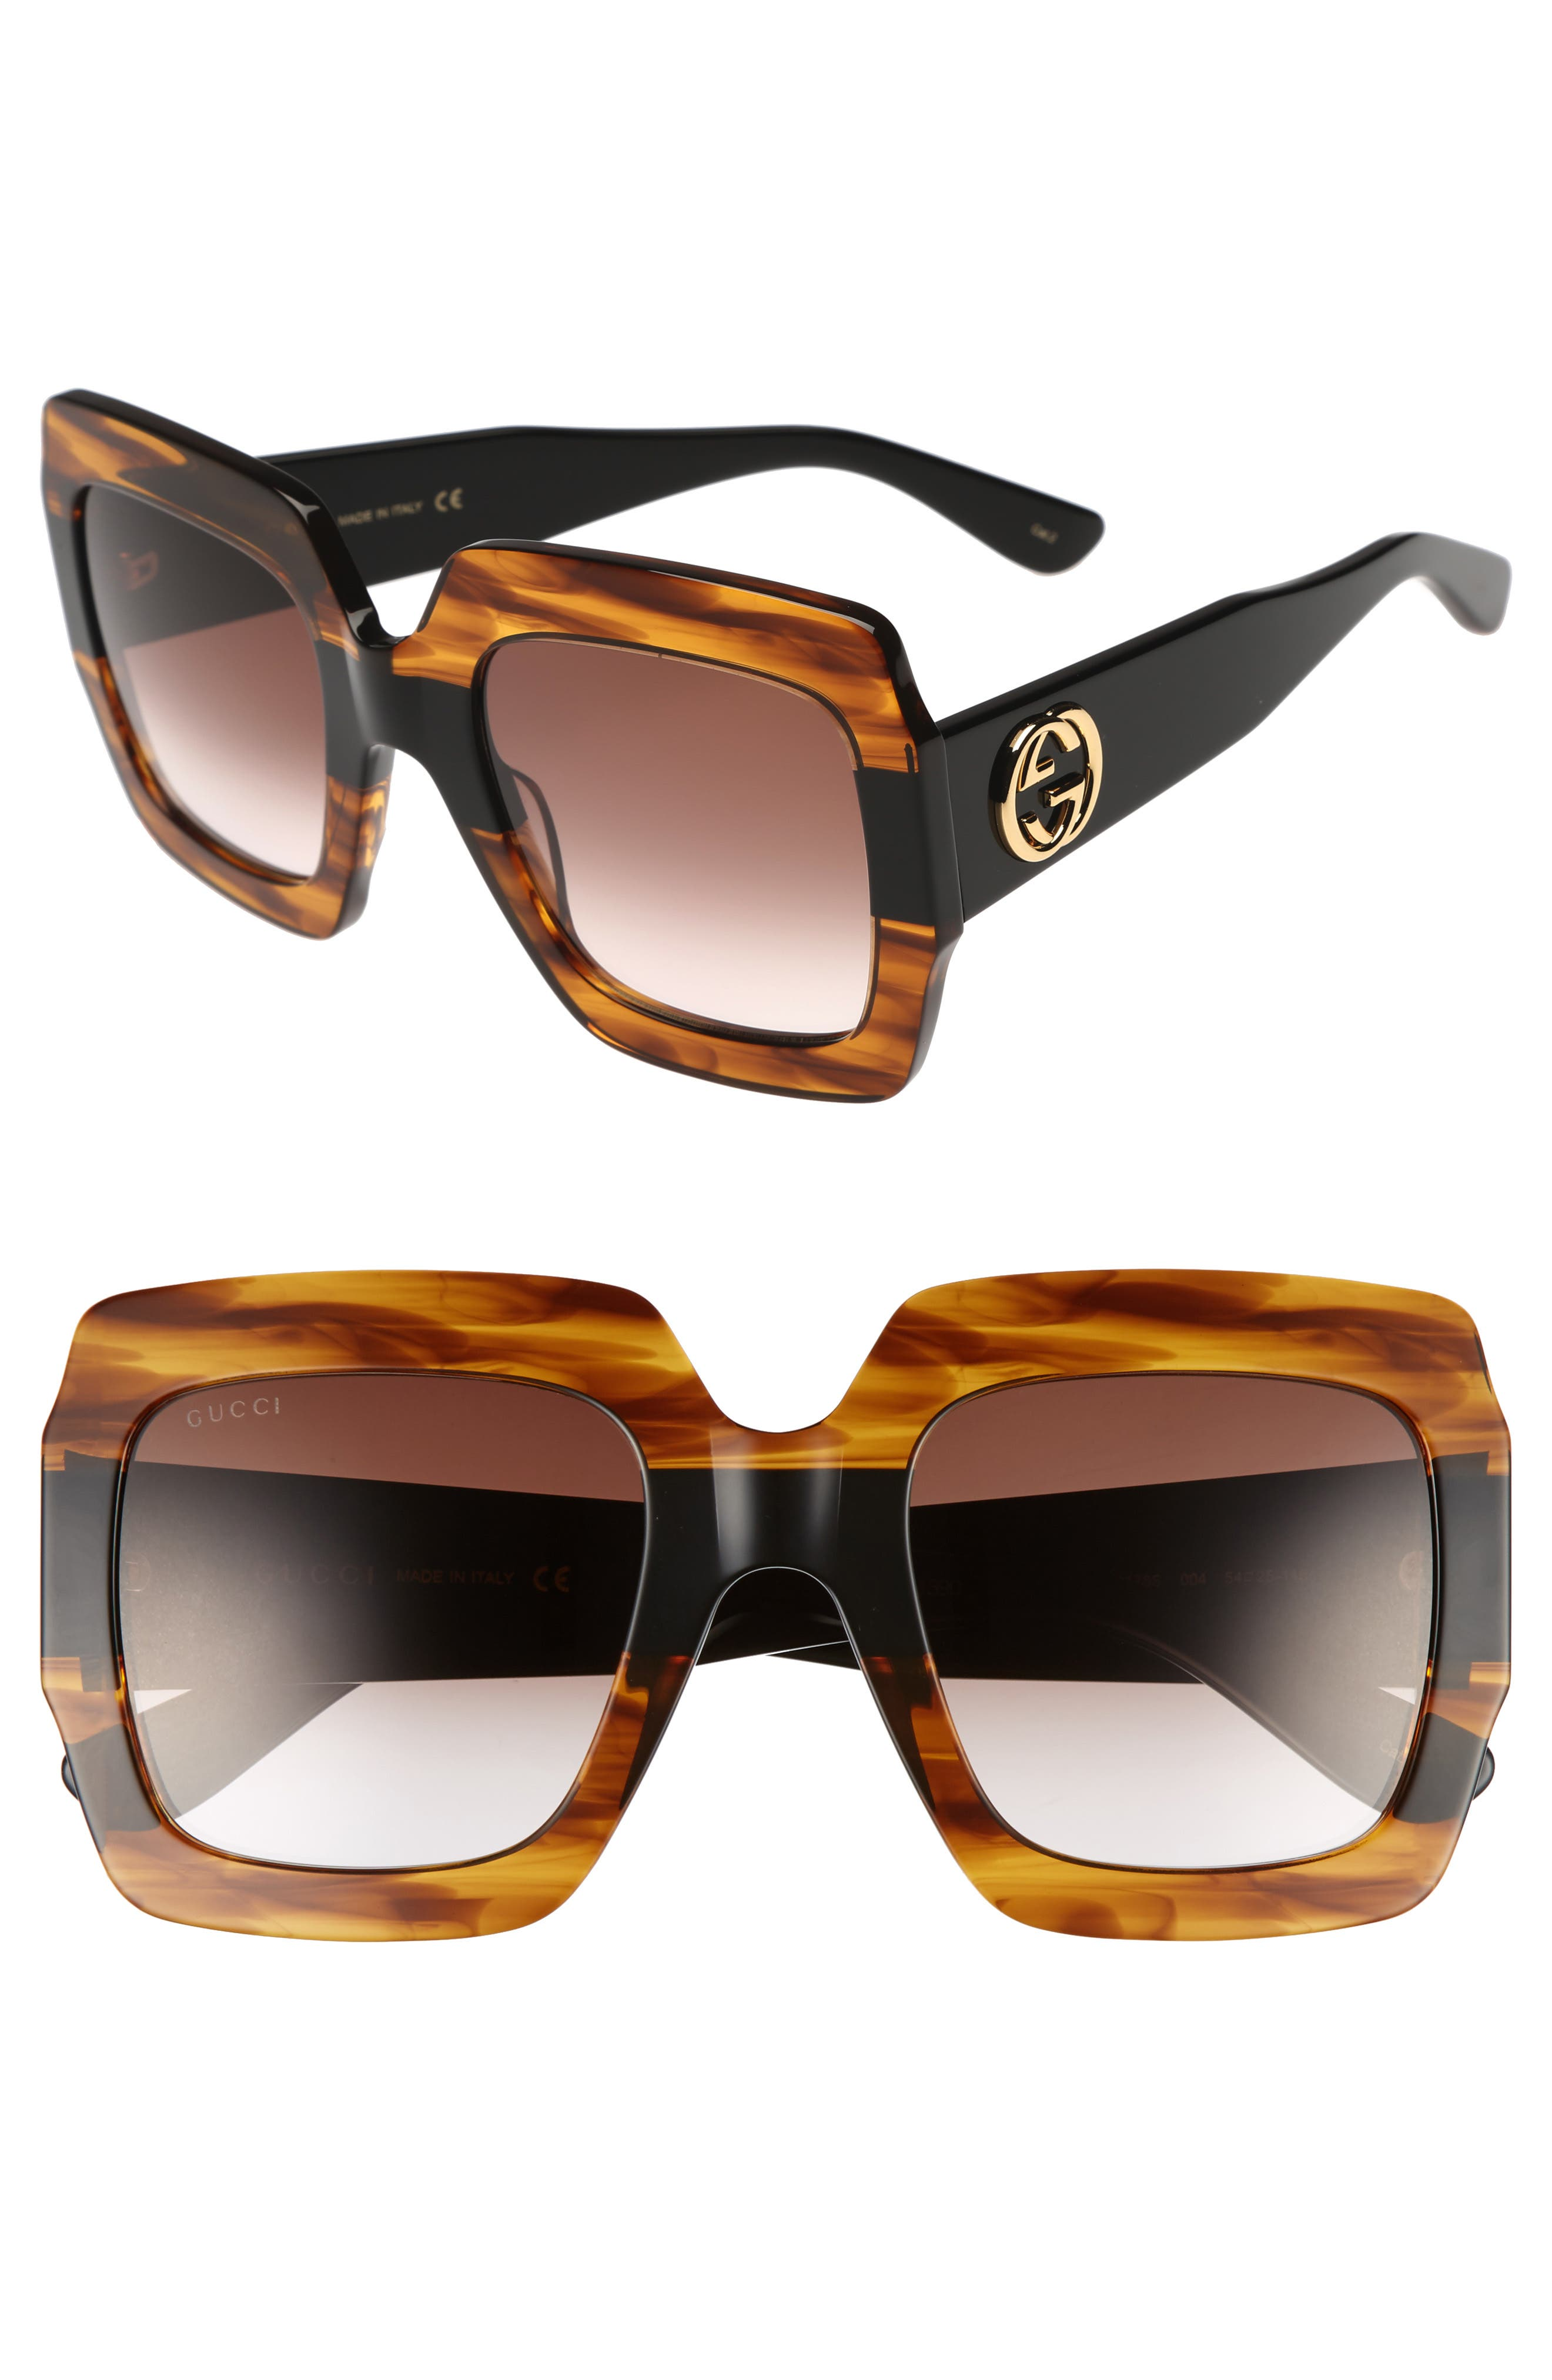 Gucci 5m Square Sunglasses - Havana